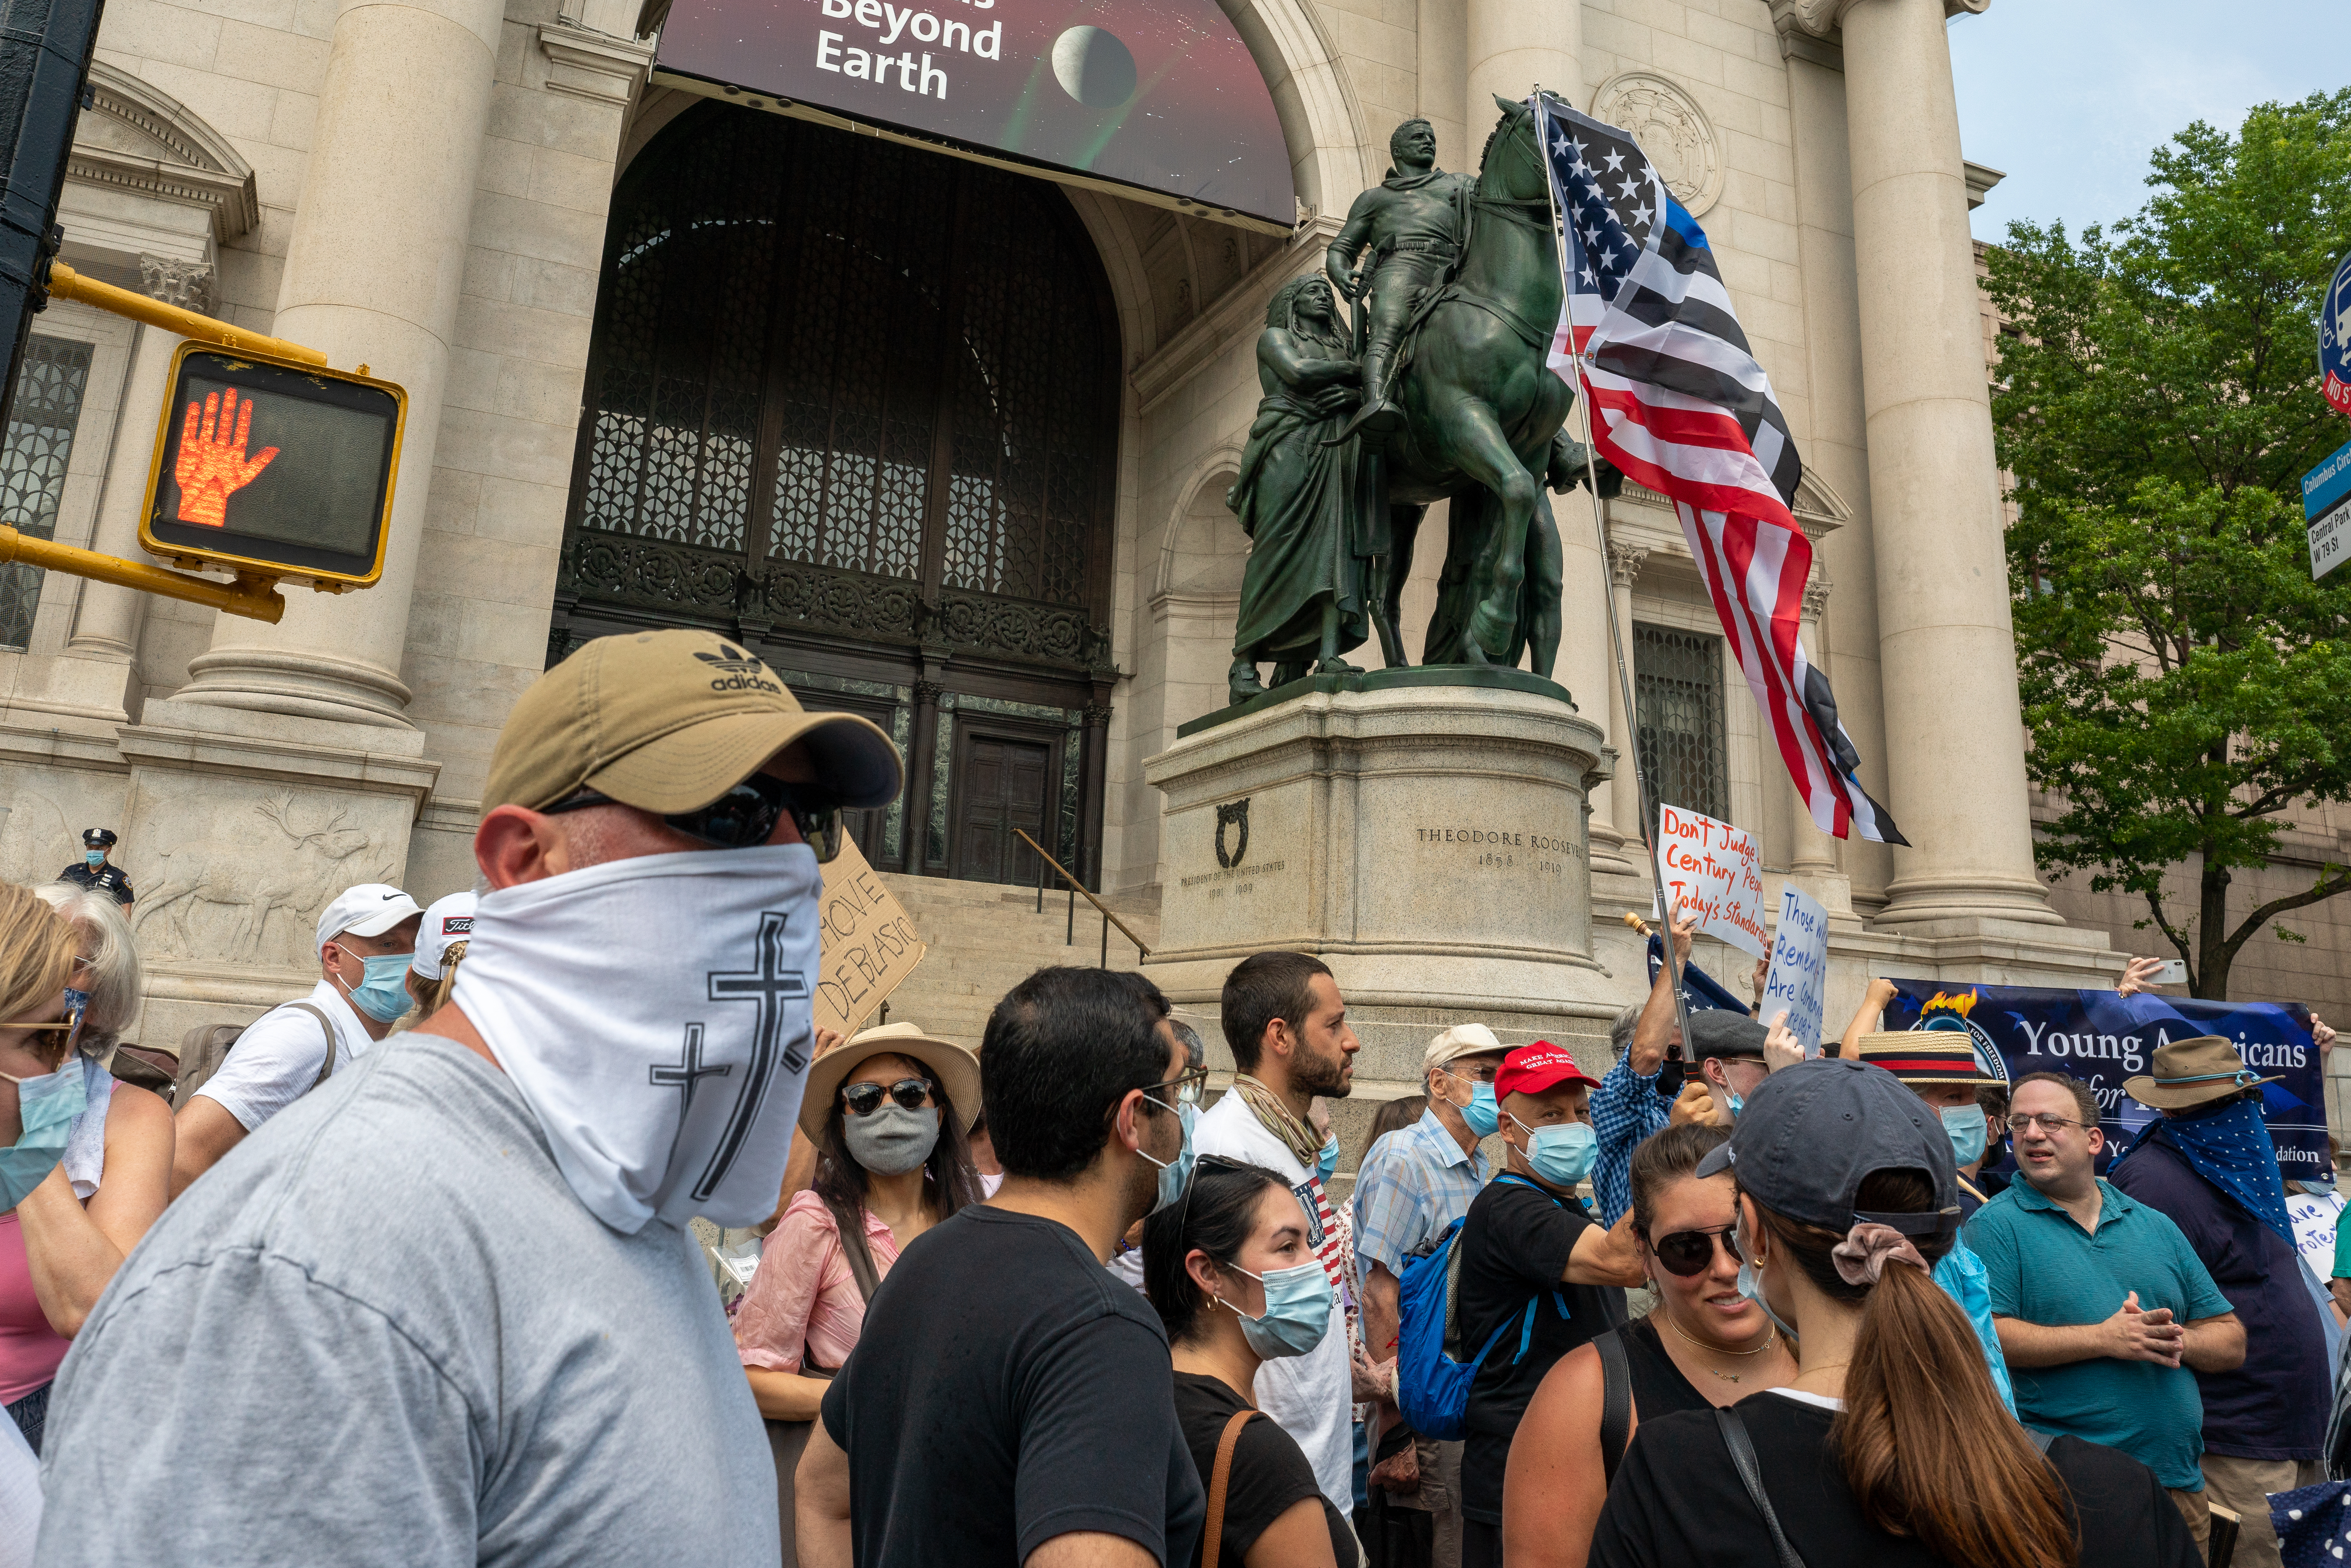 A rally led by the New York Young Republican Club calls for the statue of Theodore Roosevelt to remain in place on June 28, 2020 in New York City. (Photo: David Dee Delgado/Getty Images)